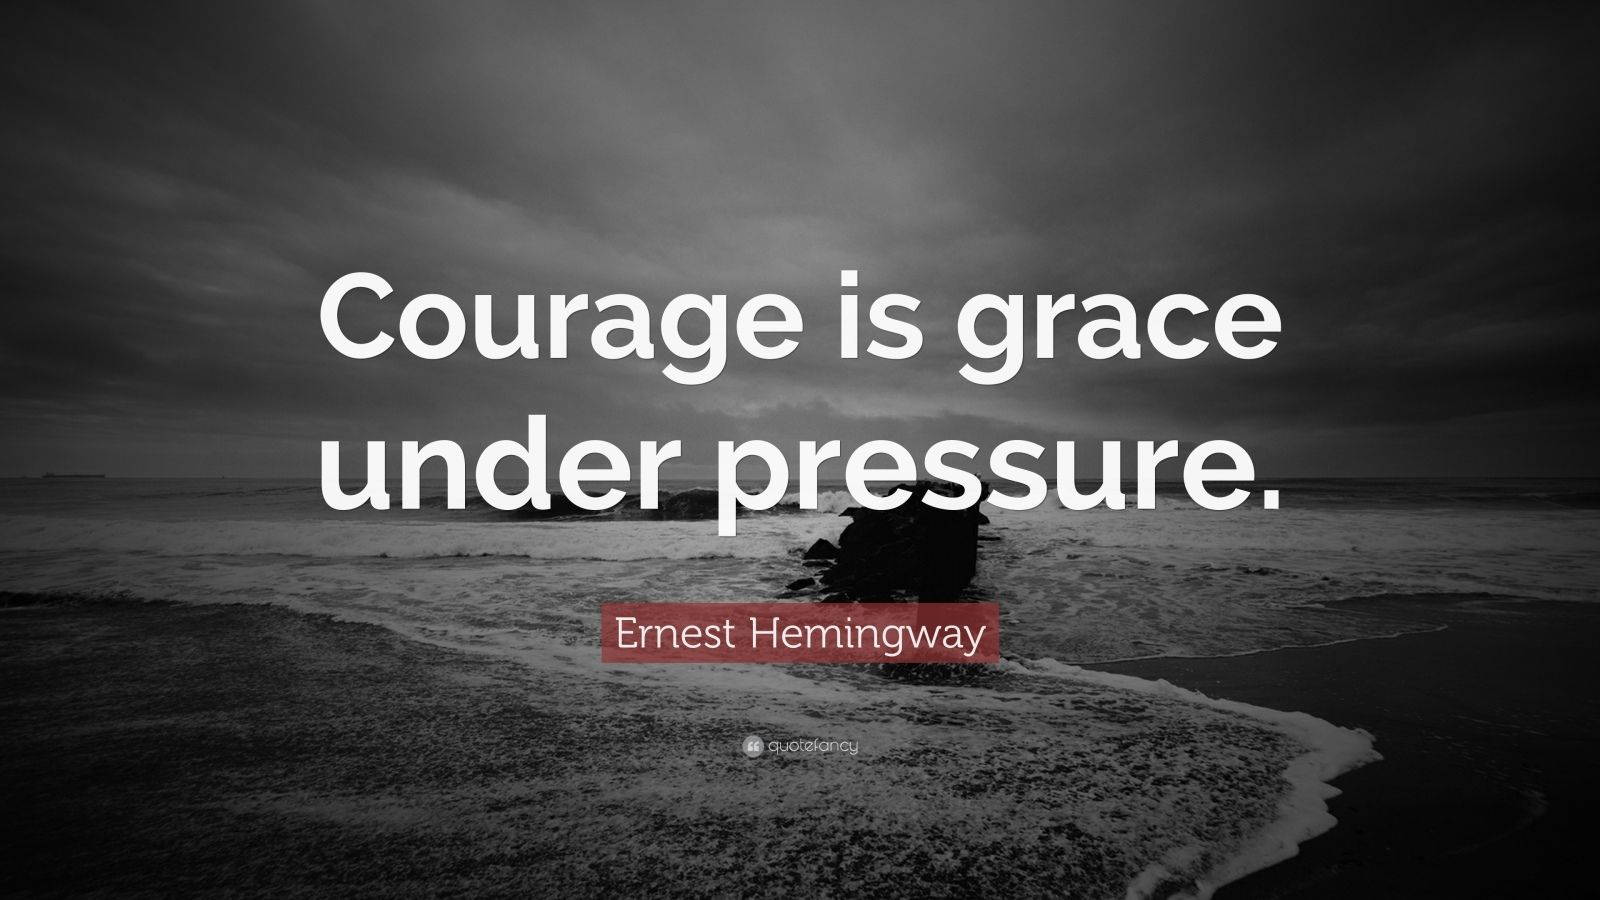 Ernest Hemingway Quote Courage Is Grace Under Pressure